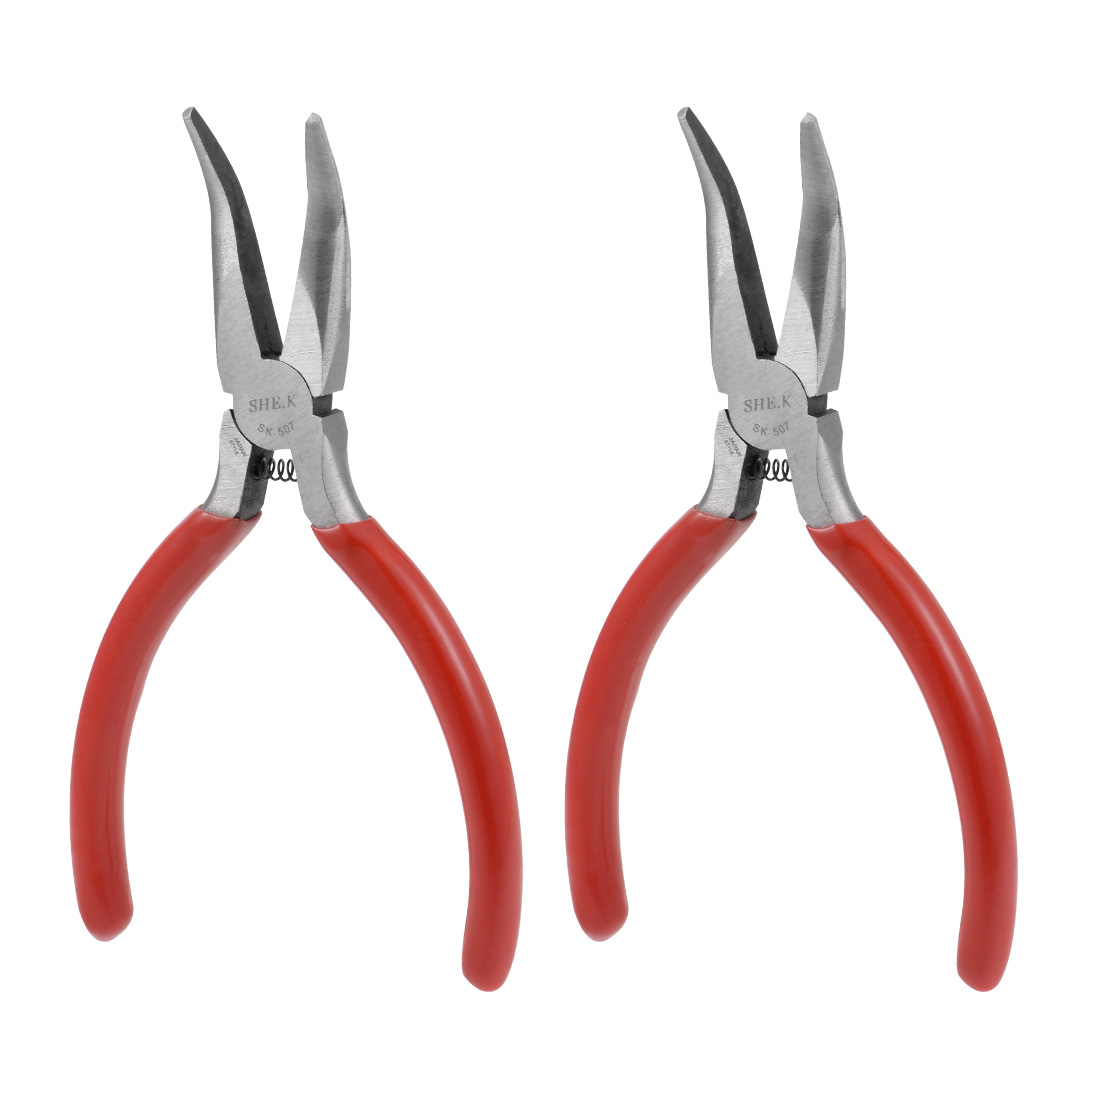 Bent Long Nose Pliers 5-Inch Forged from High Carbon Steel, Nickel Plating 2 Pcs